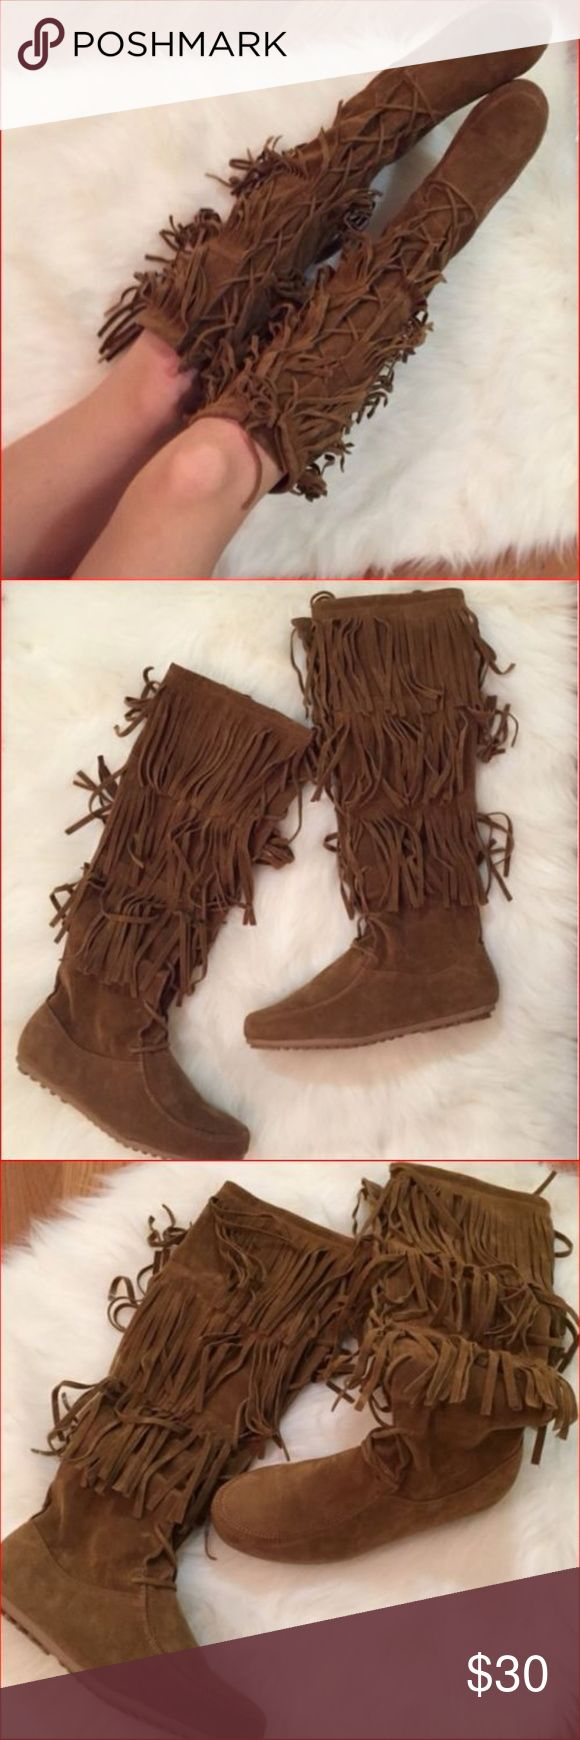 """Calf High 3 Layer Fringe w Laces Moccasin Boots Keep your casual look on trend this season in these suede boots. Western inspired fringe details, add a boho flair to your laid back style!  Features include front laces, 3 layers of fringe, round toes, flexible rubber soles and side zipper. Outstanding boots for festivals, concerts, and just because you will look amazing in them!  11"""" shaft height. Calf width can be adjusted with laces from 11"""" to 15"""" Cognac dyed suede. Previously loved and…"""